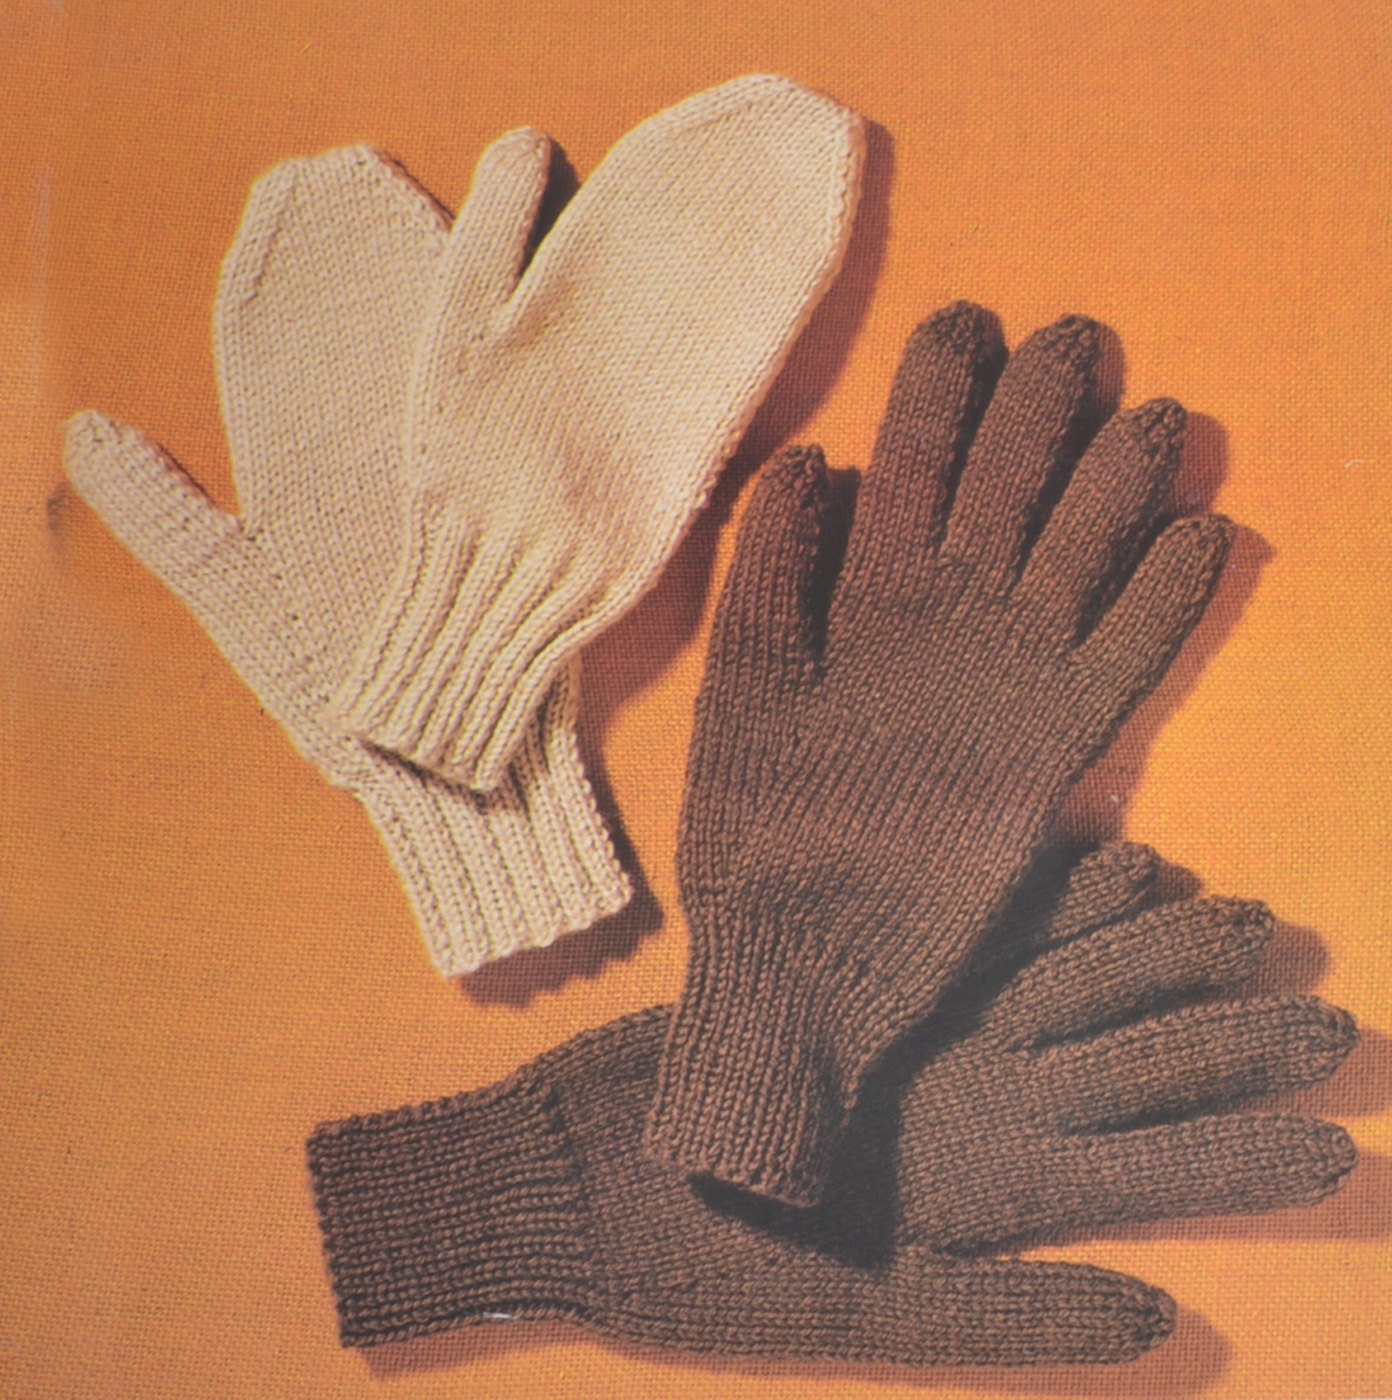 Mens Mittens Knitting Pattern : PDF vintage knitting pattern mens mittens gloves pdf